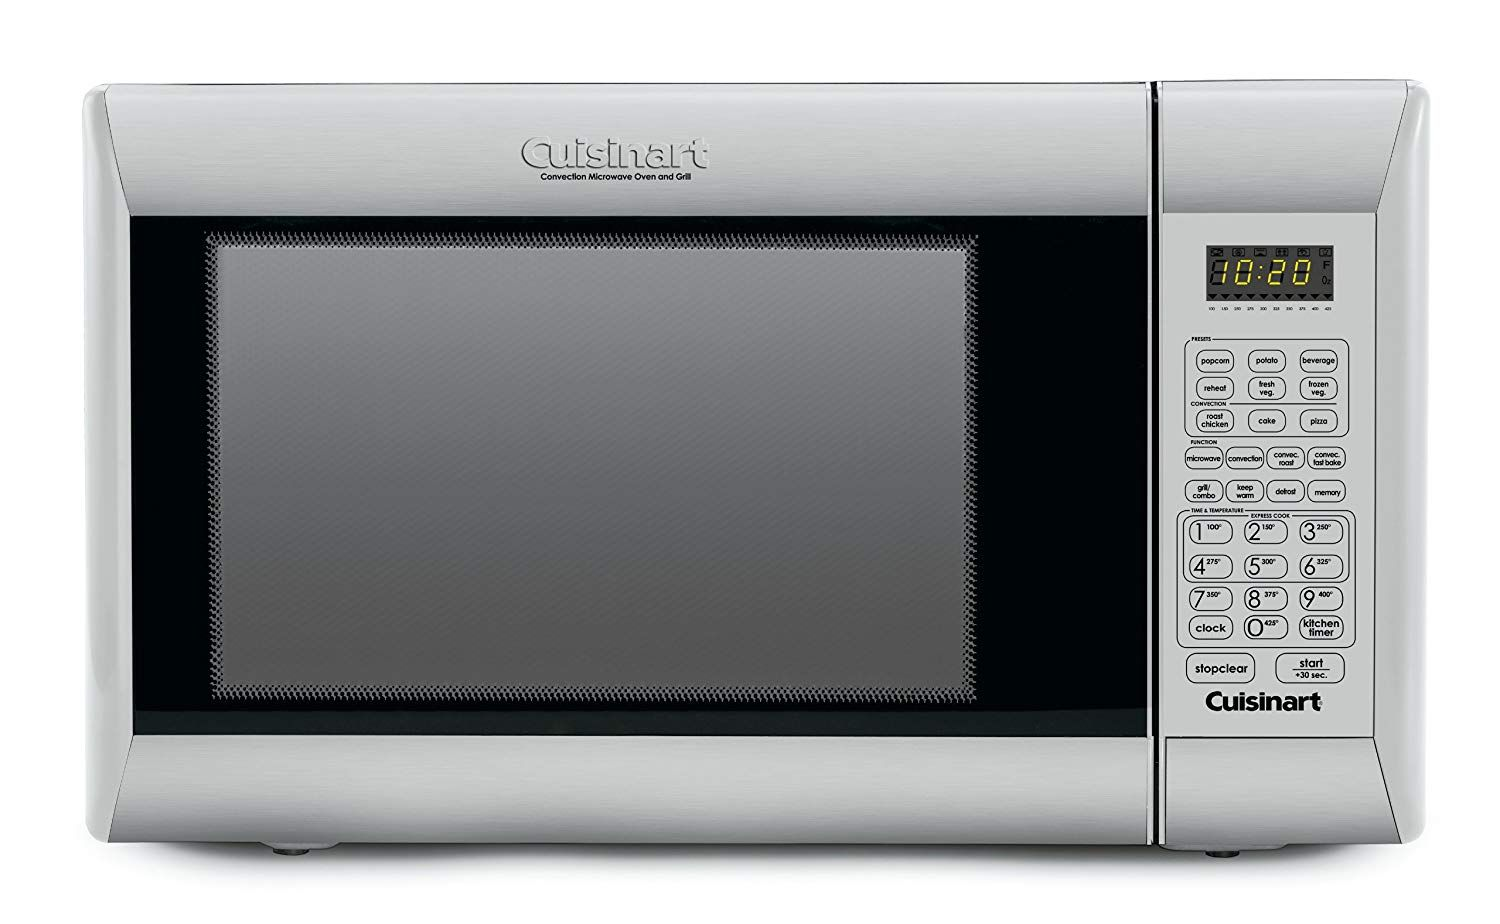 Best Microwave Toaster Oven Combo 2019 Top 5 Recommended And